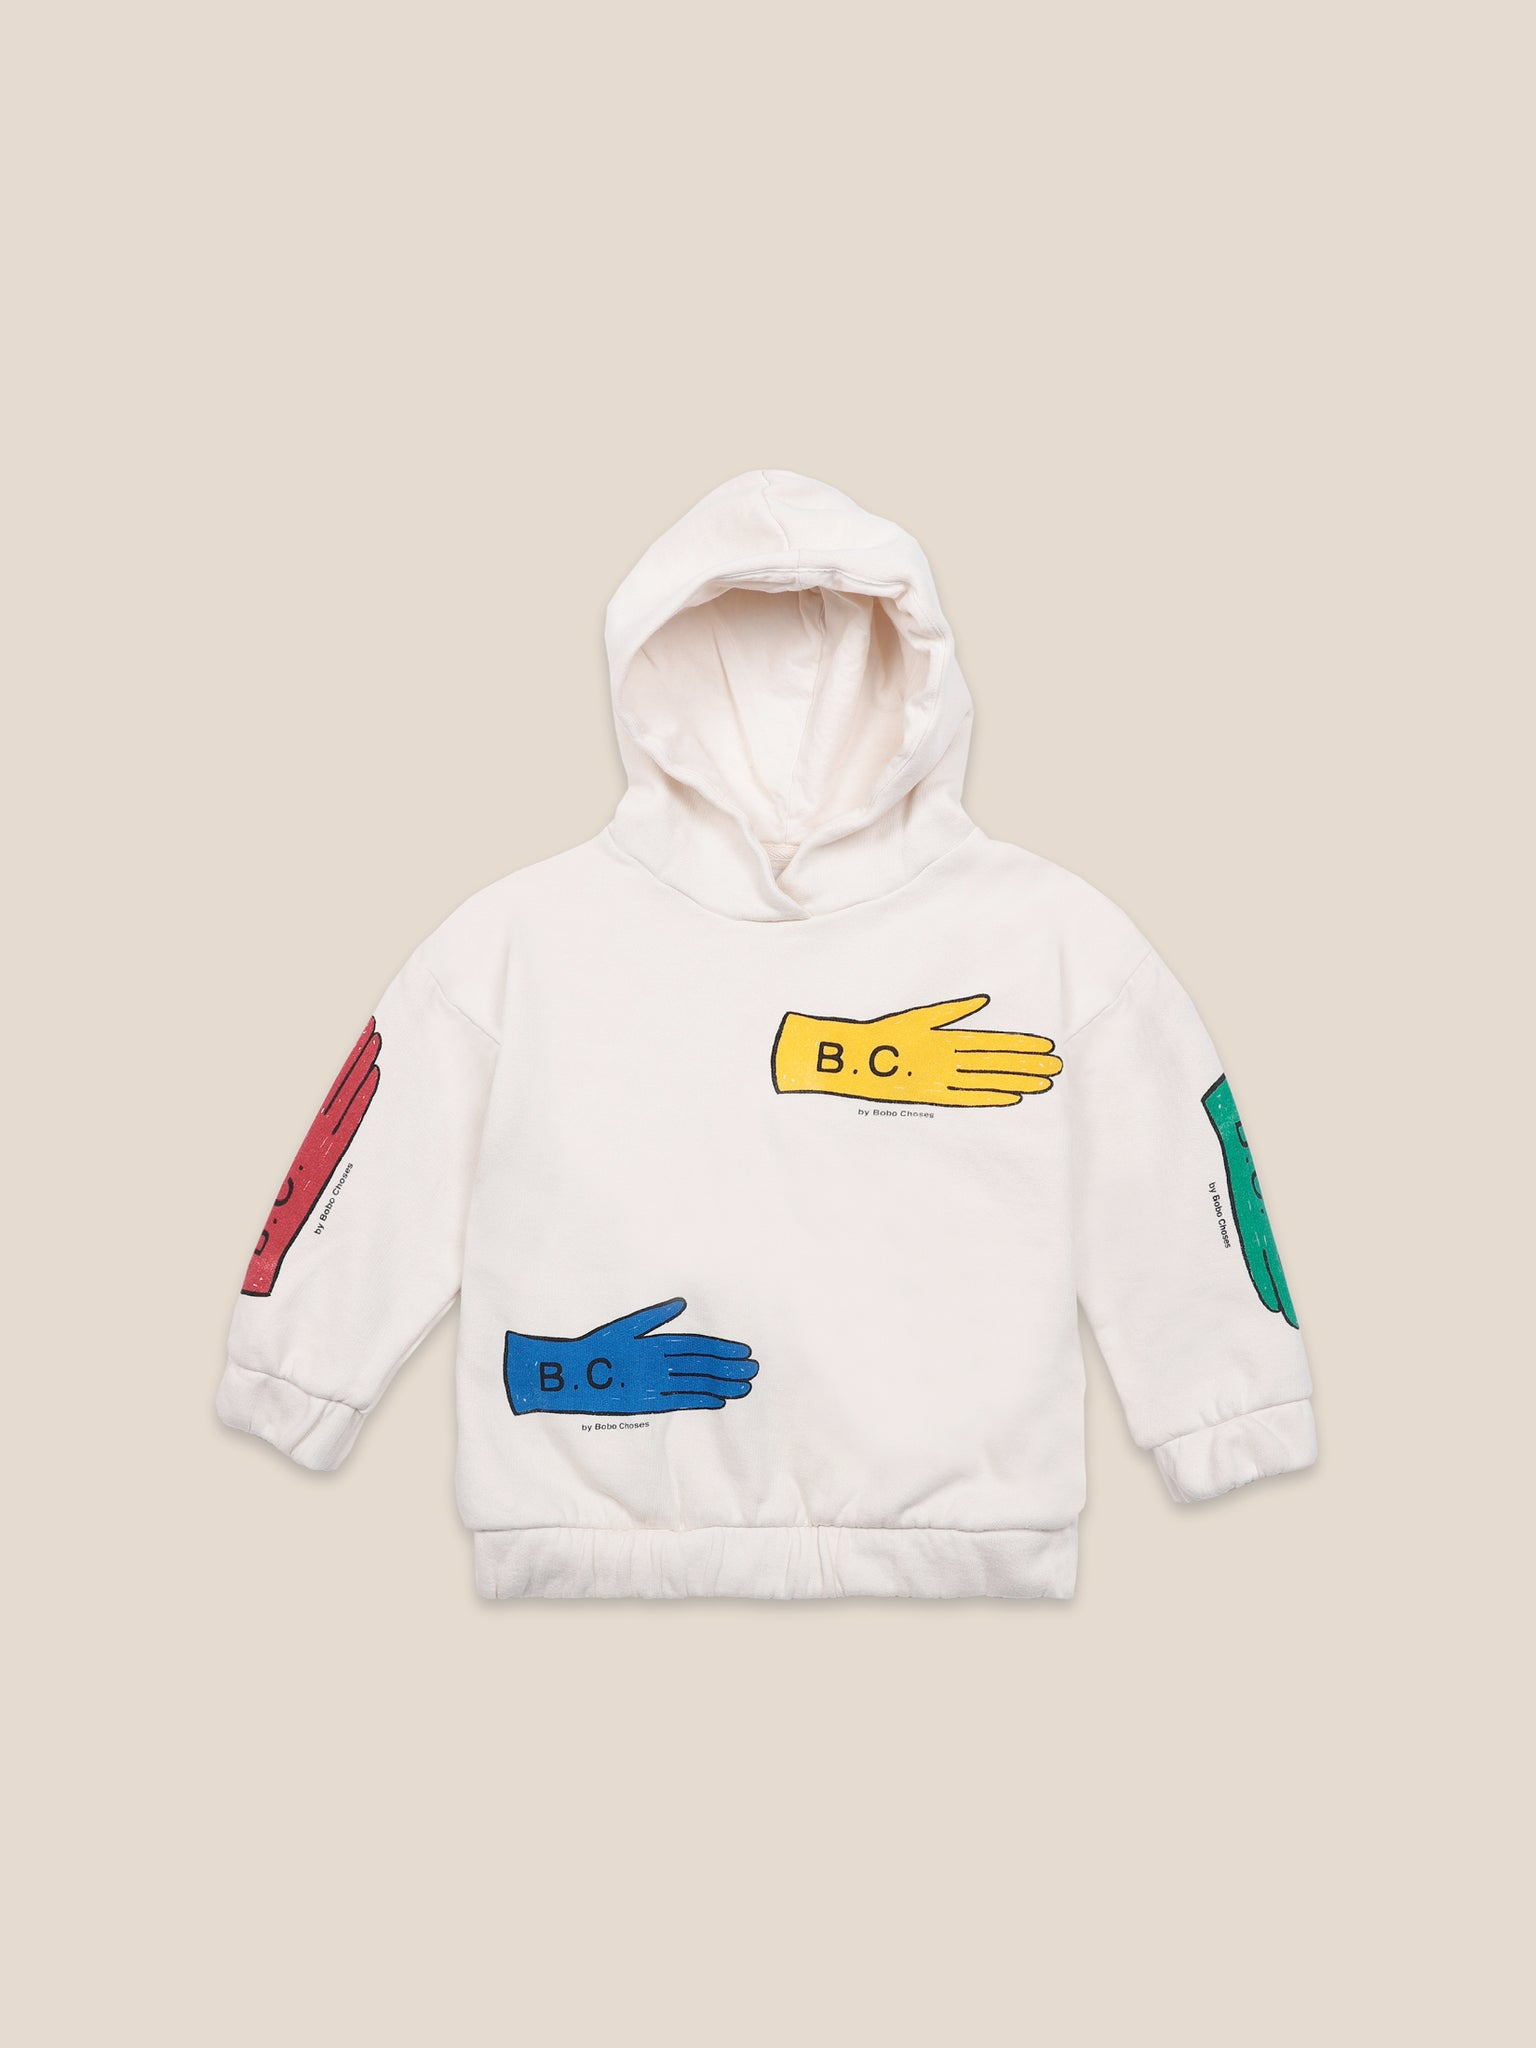 Lost Gloves Hooded Sweatshirt